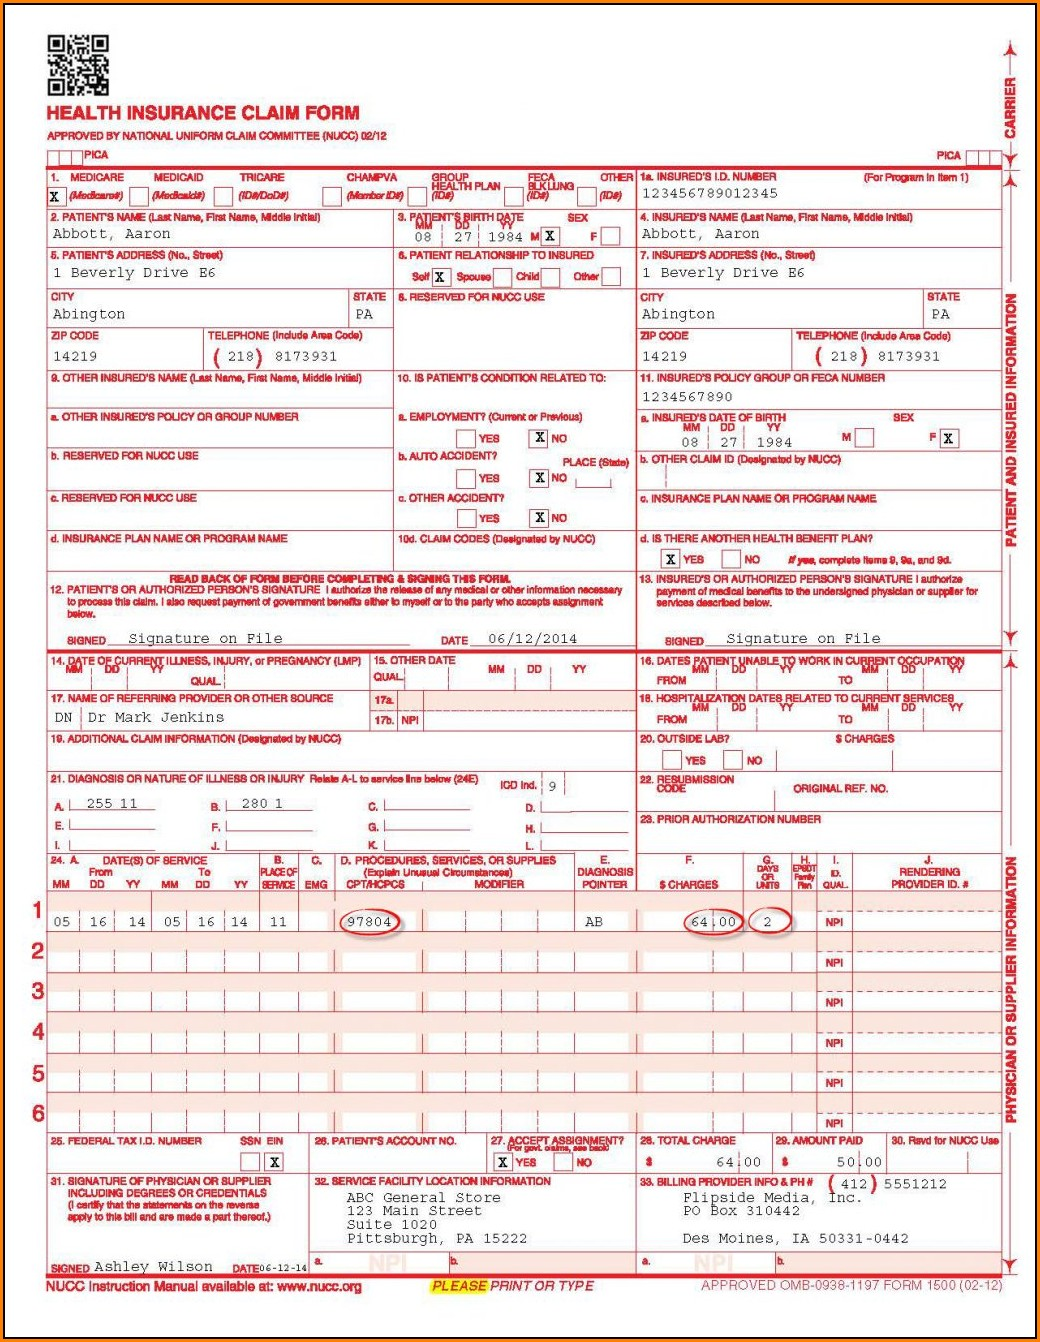 completed-cms-1500-form-sample